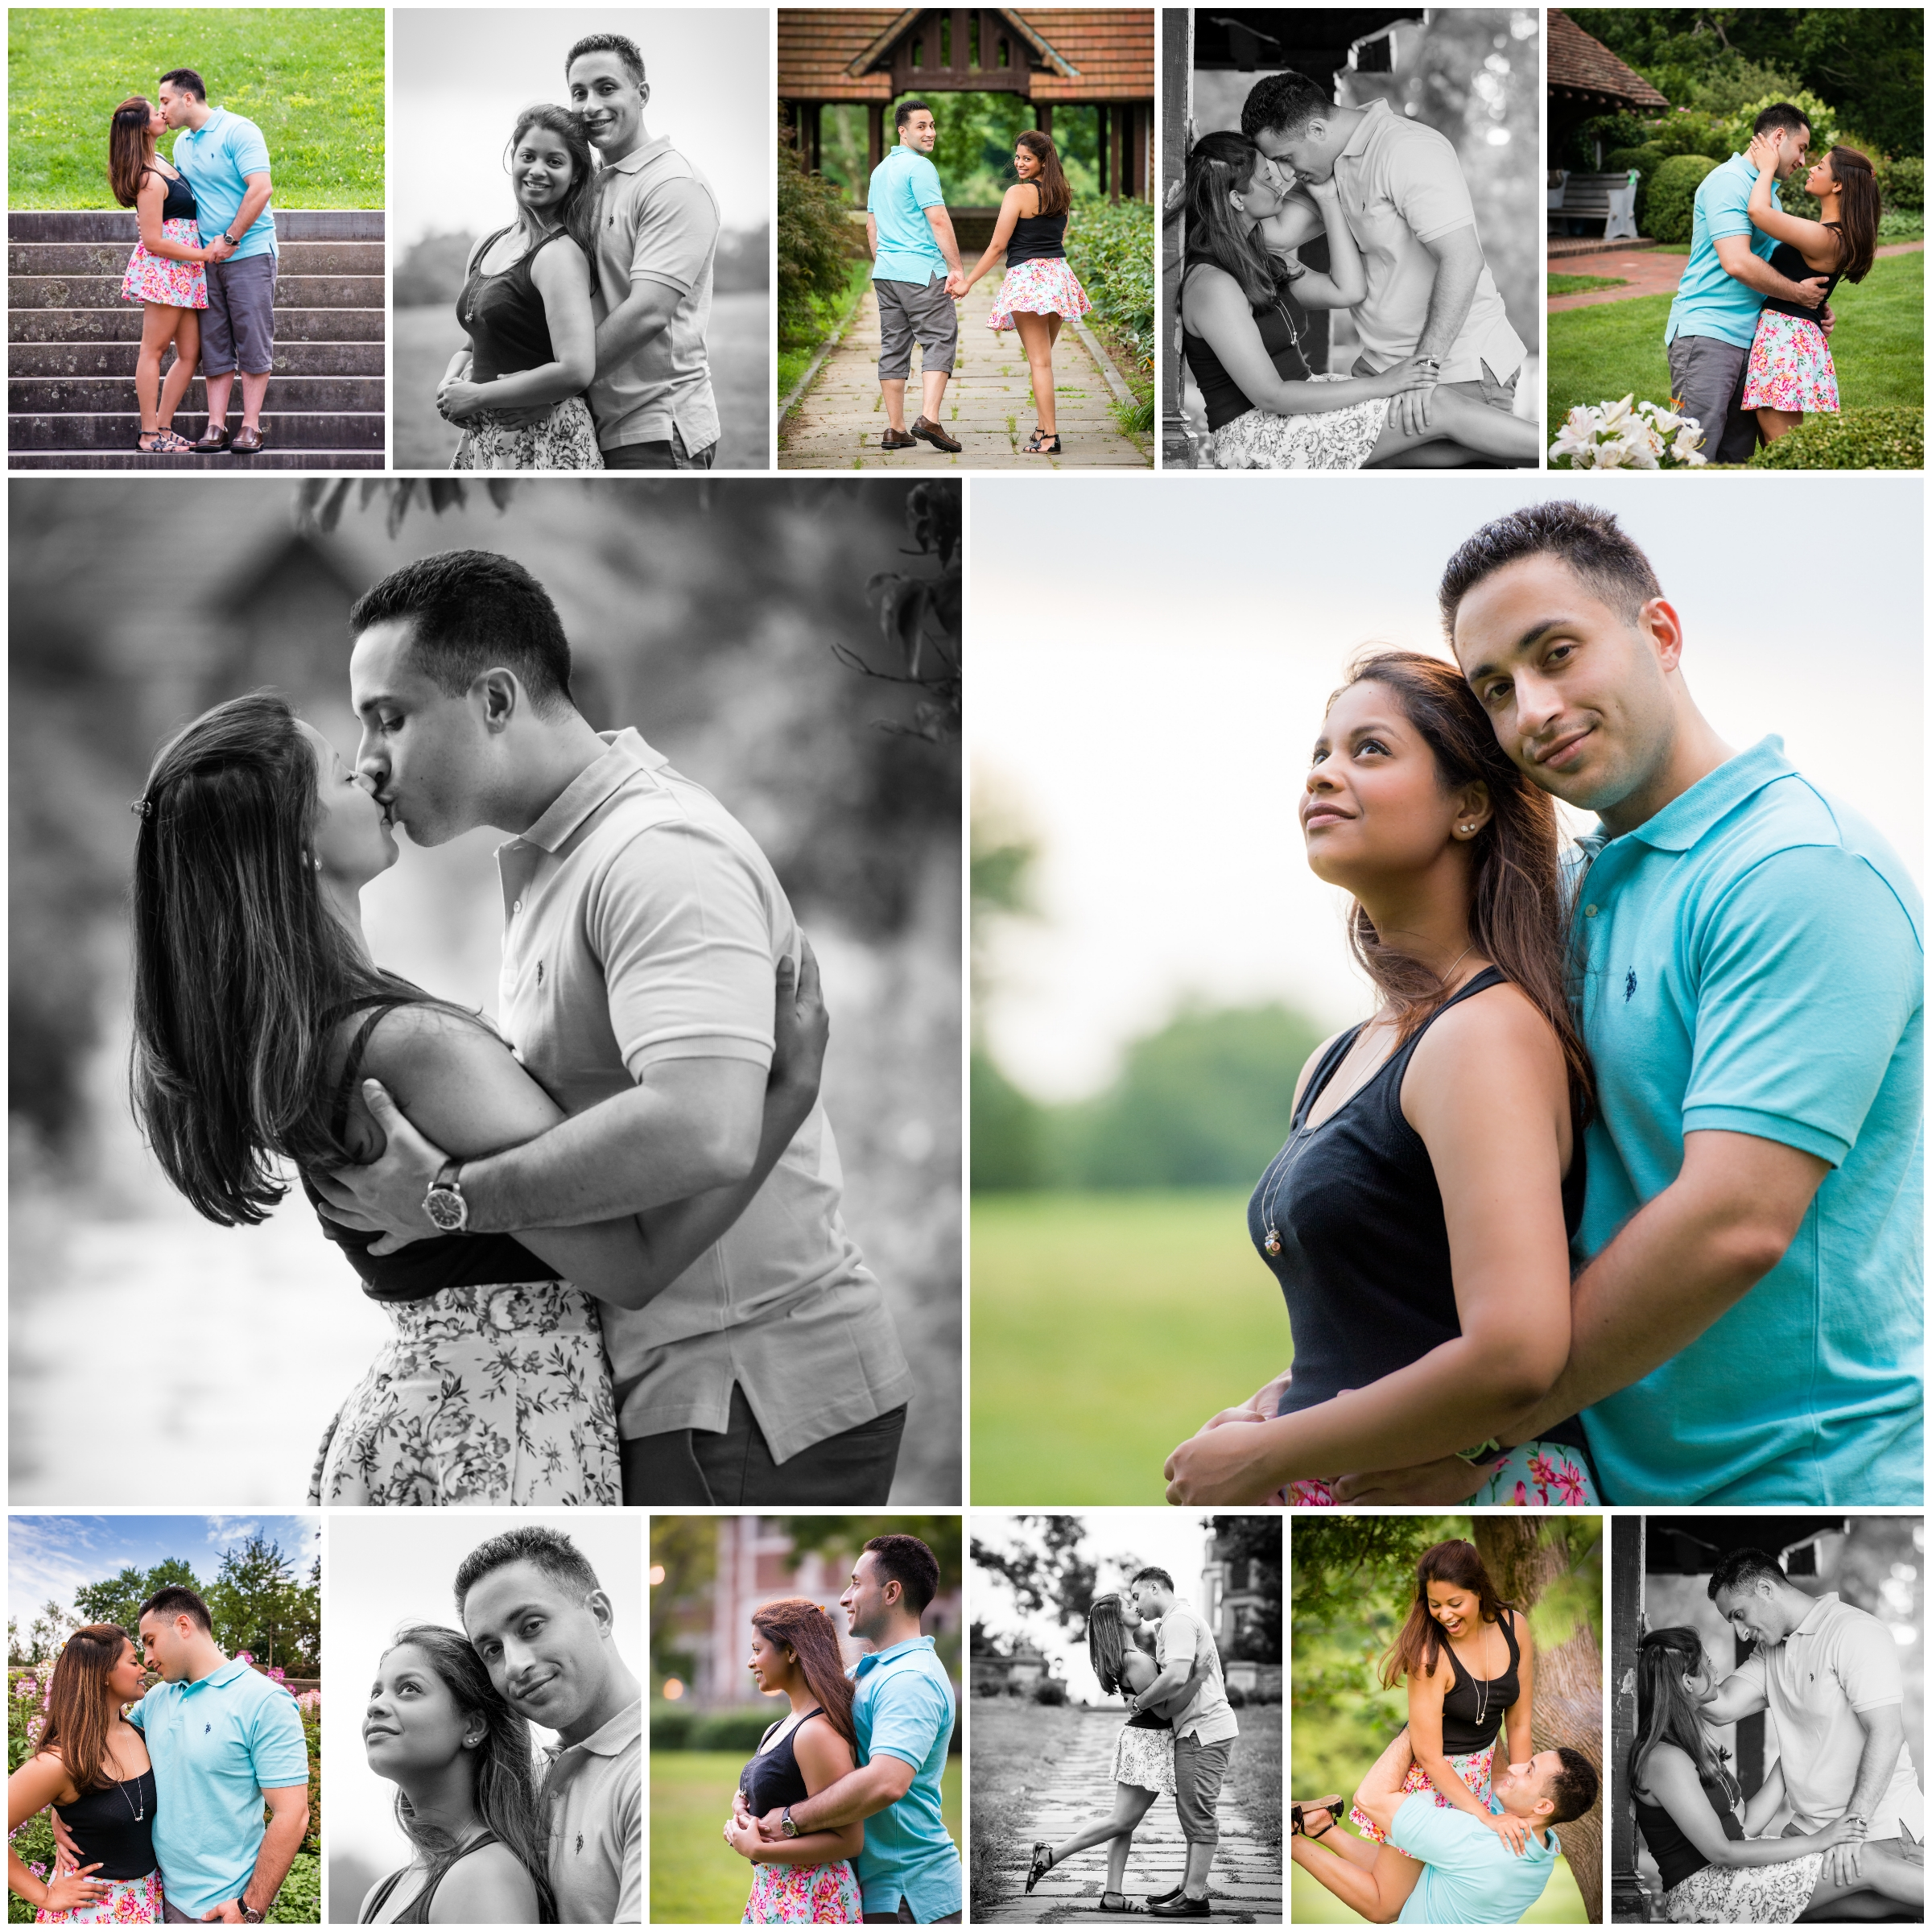 I can't resist sharing more shots from their couples portrait session. You can feel their love through every photo!